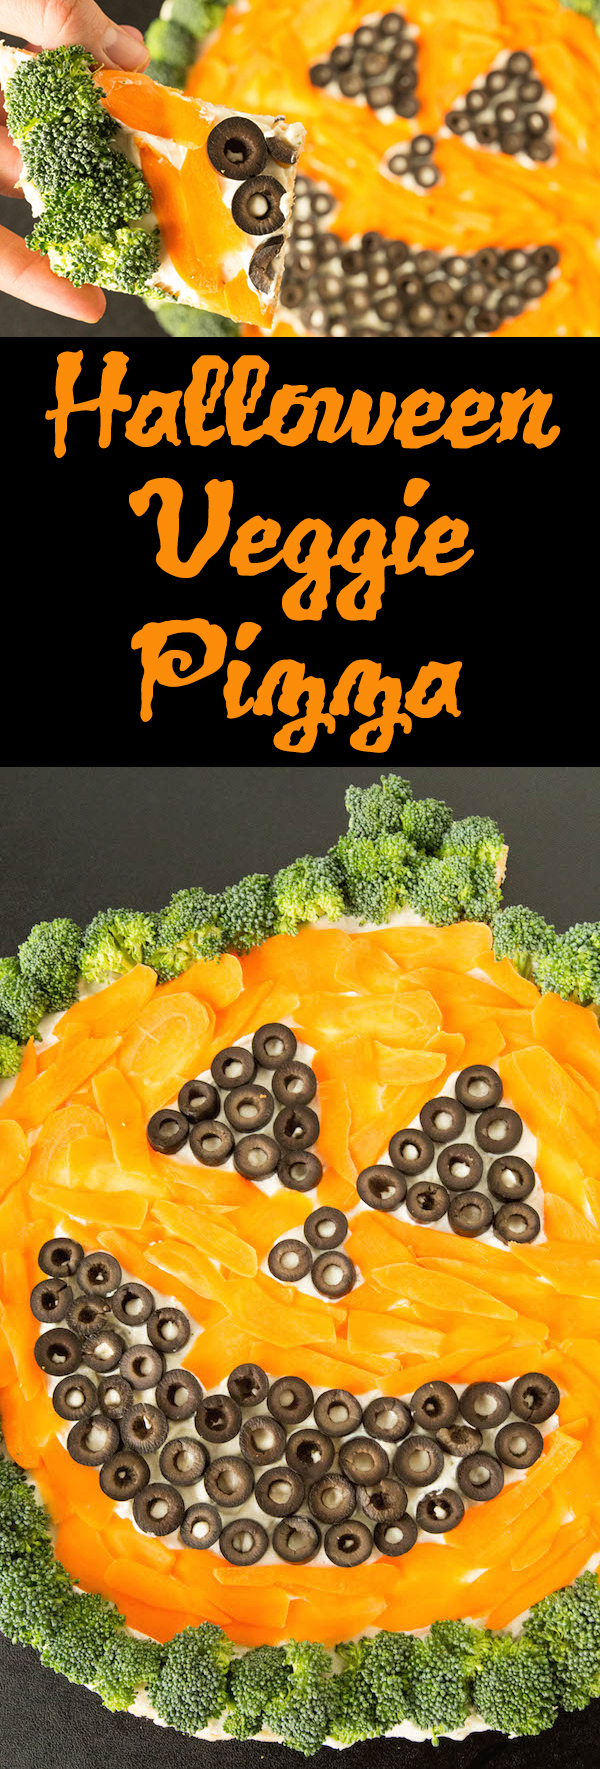 Learn how to make a Halloween Veggie Pizza in the shape of a pumpkin.